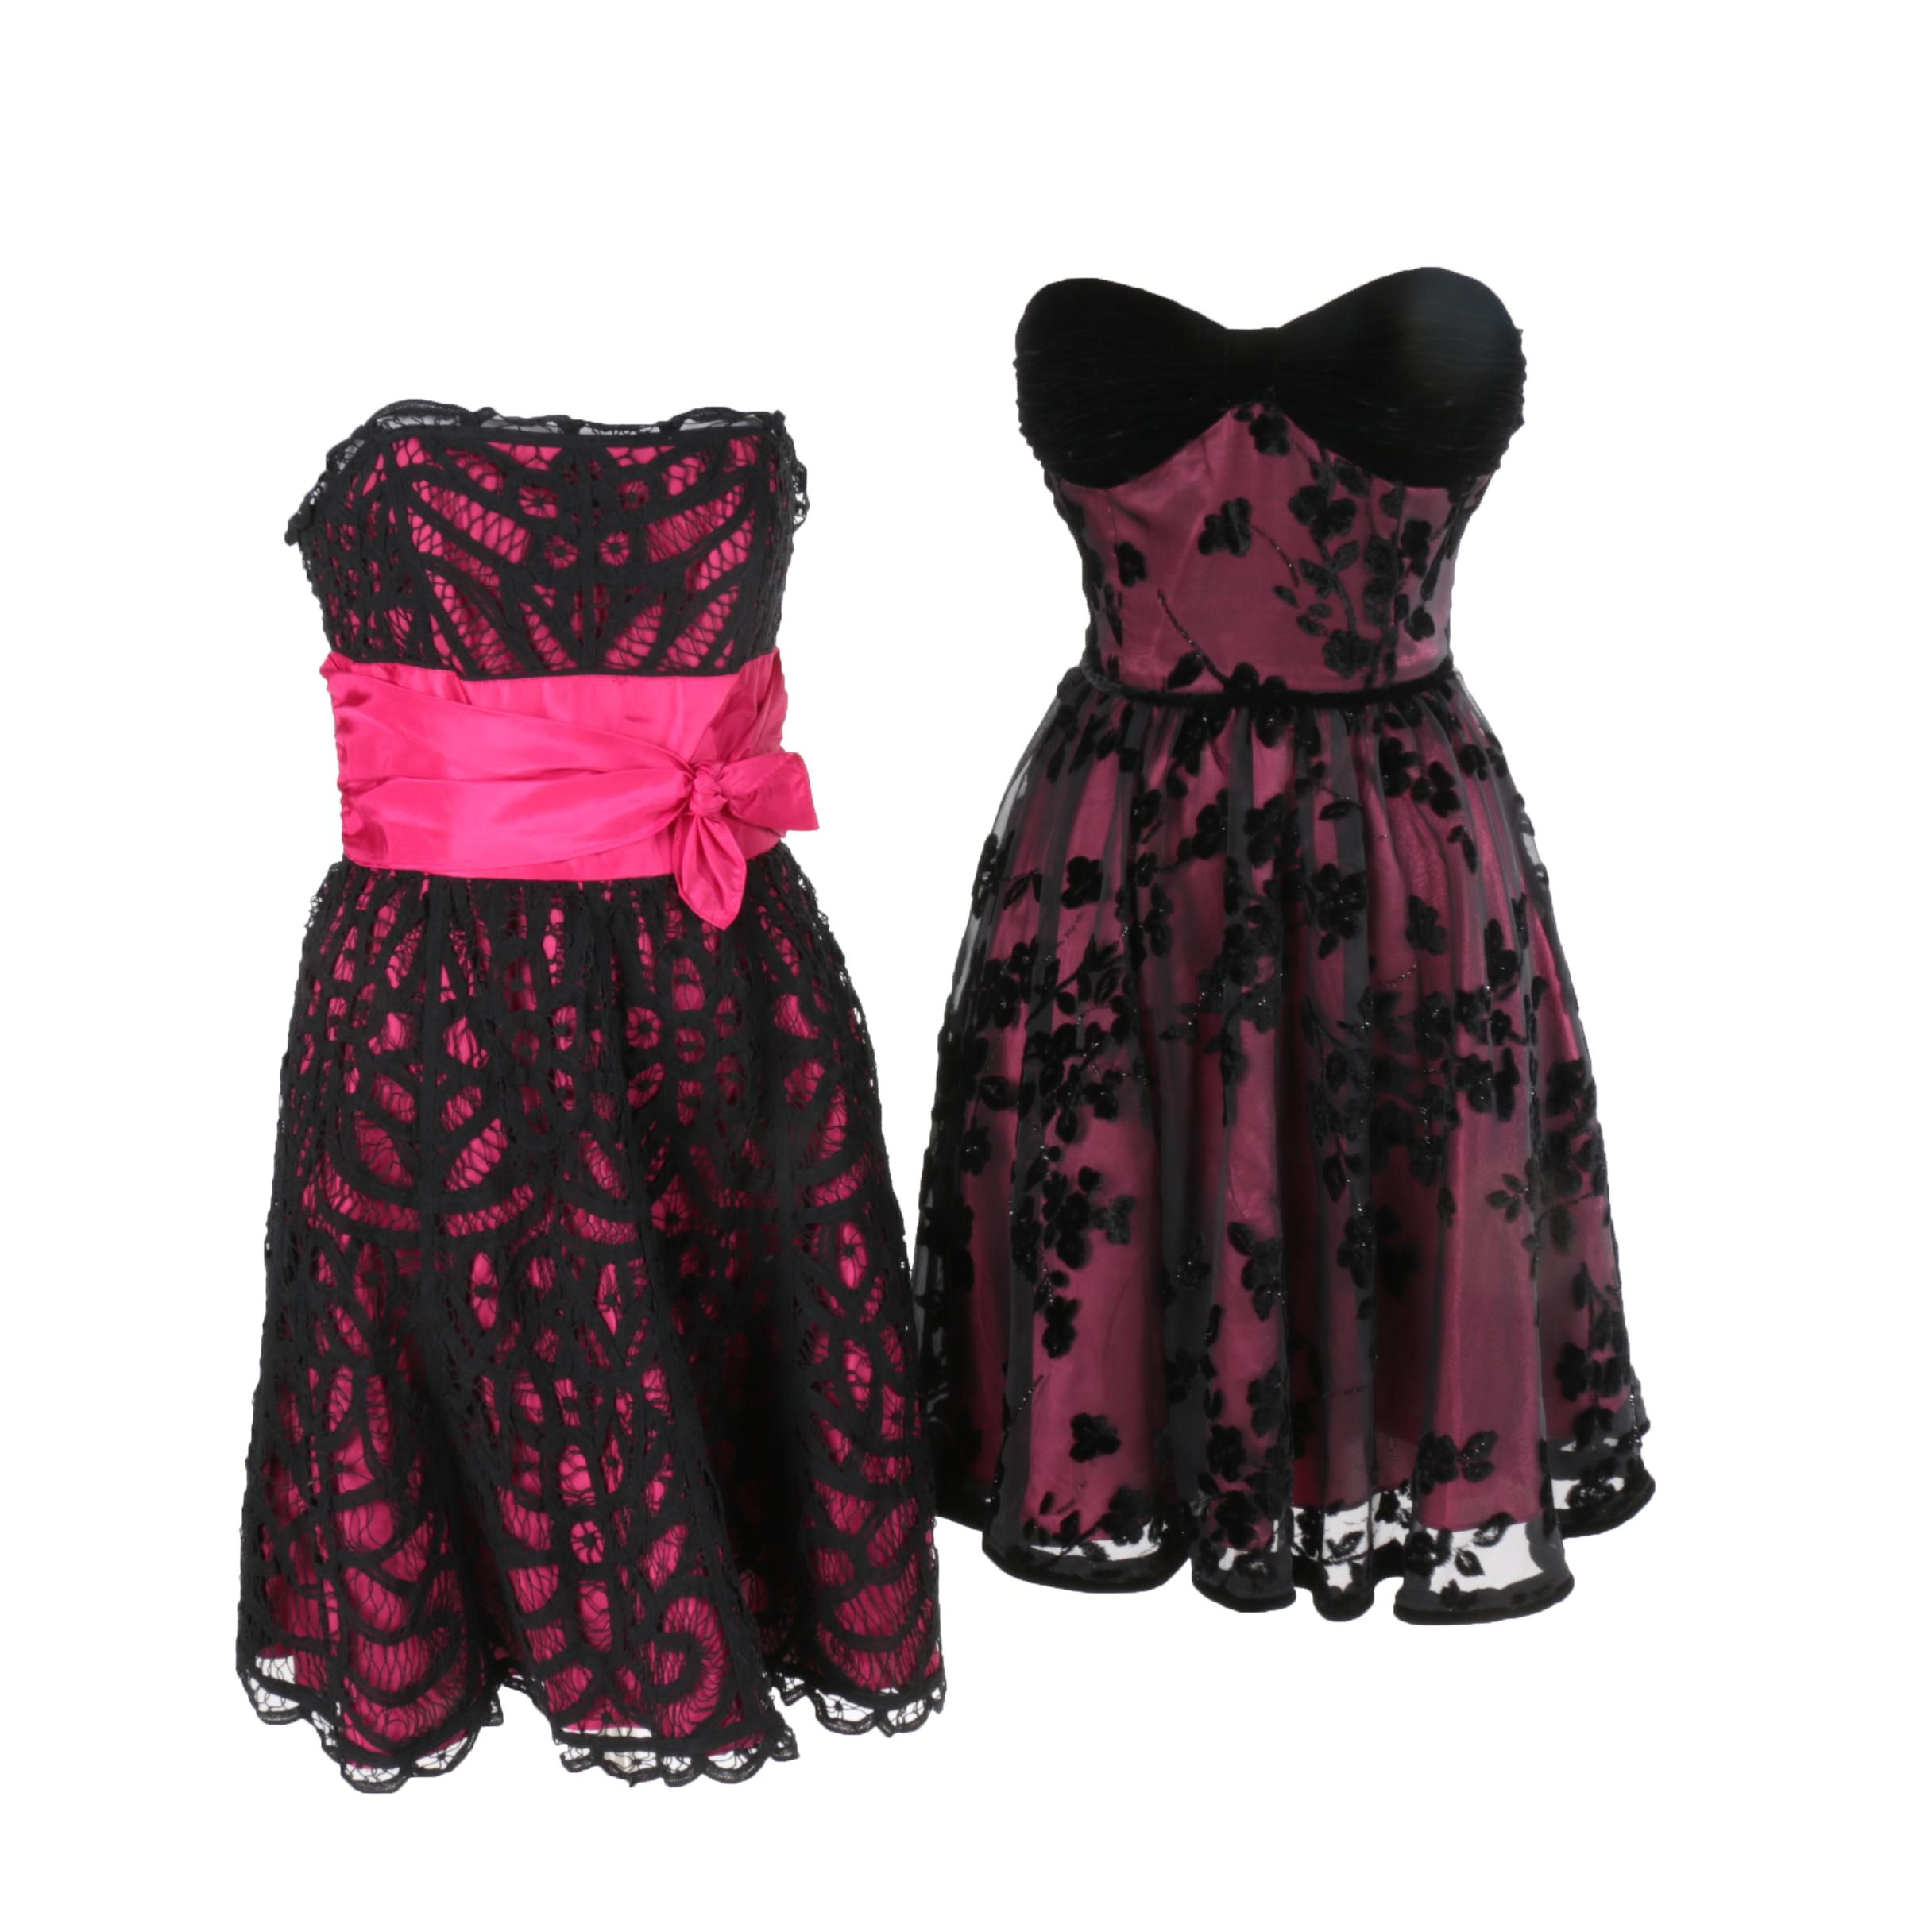 Two Betsey Johnson Strapless Dresses